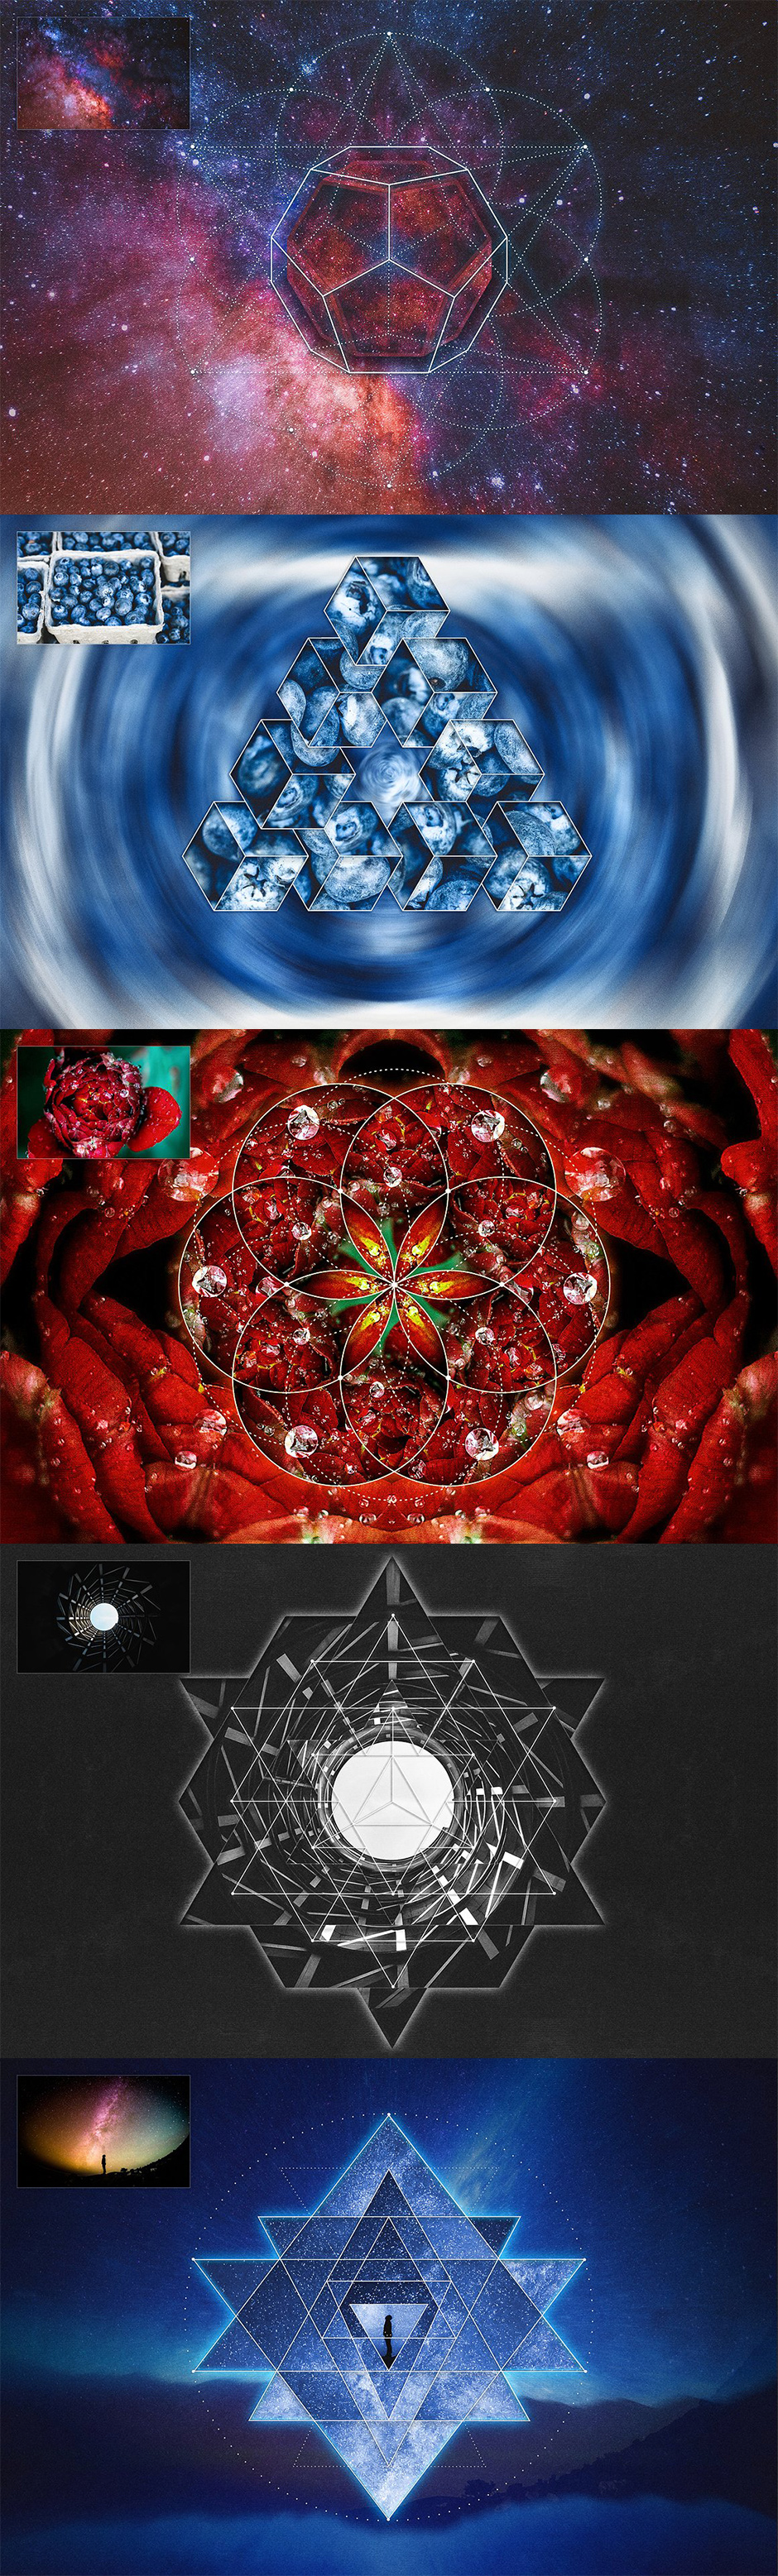 Sacred Geometry Generator: A Photoshop Panel For Creating Sacred Geometry  Symbols From Any Image Or Photo